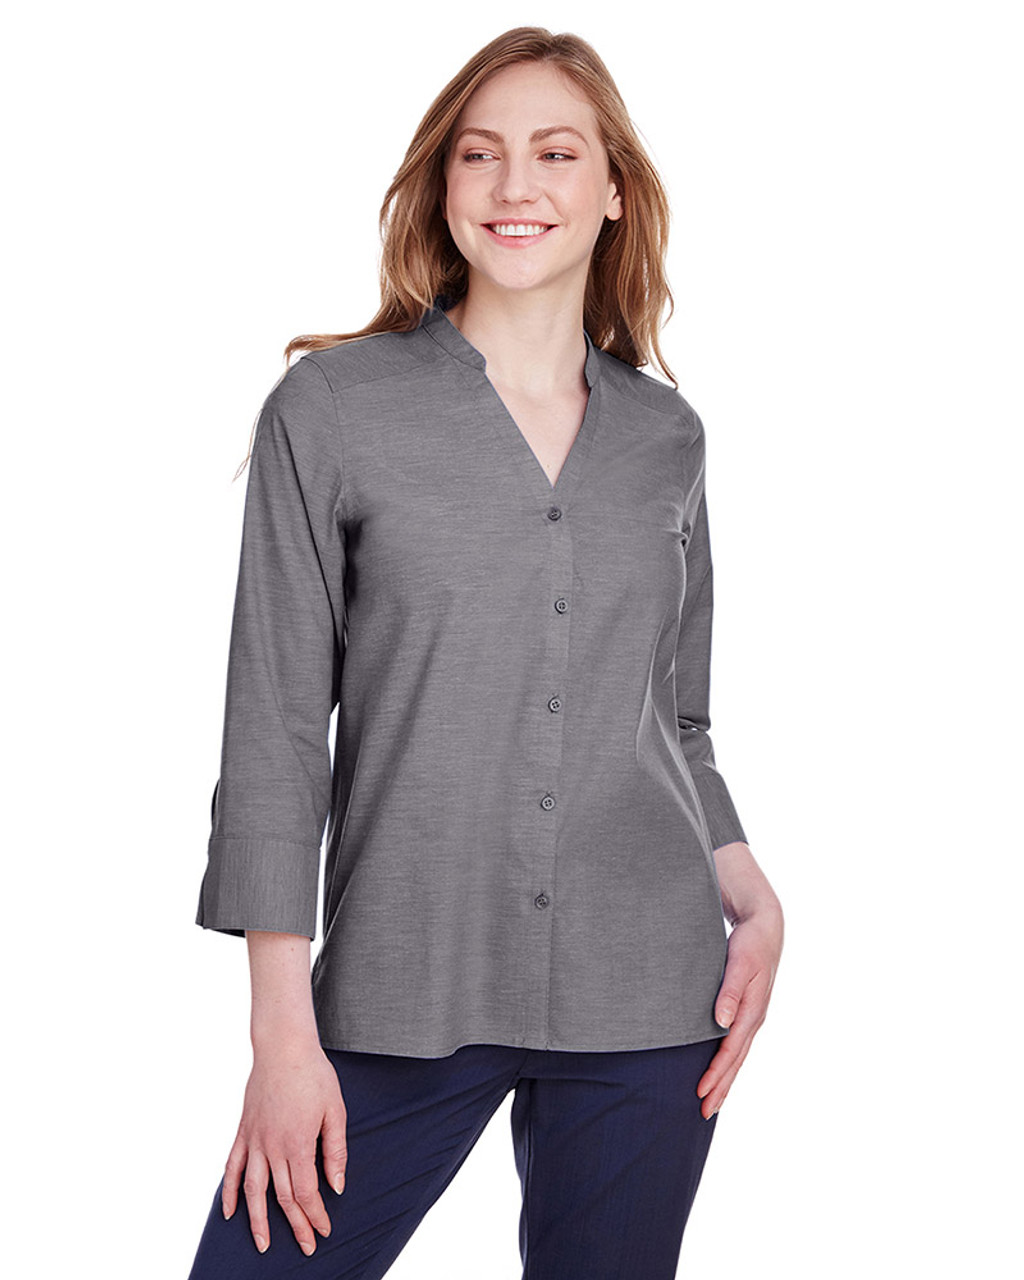 Graphite - DG562W Devon & Jones Ladies' Crown Collection™ Stretch Pinpoint Chambray 3/4 Sleeve Blouse | Blankclothing.ca